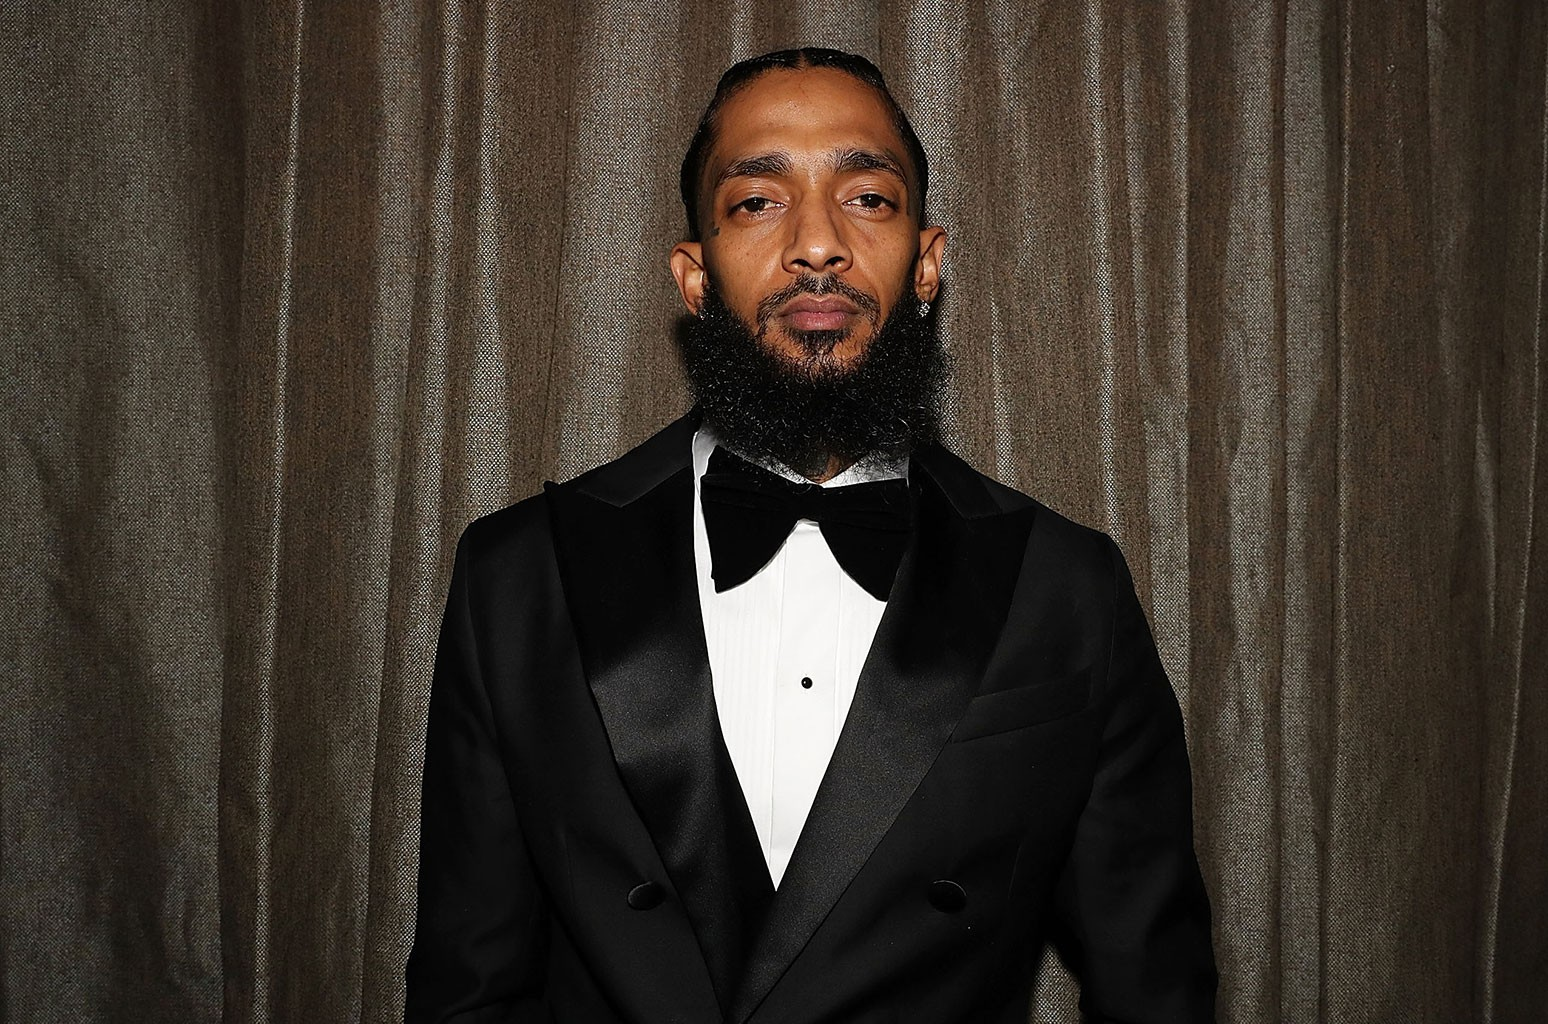 Nipsey Hussle photographed at The Peppermint Club on Feb. 8, 2019 in Los Angeles.